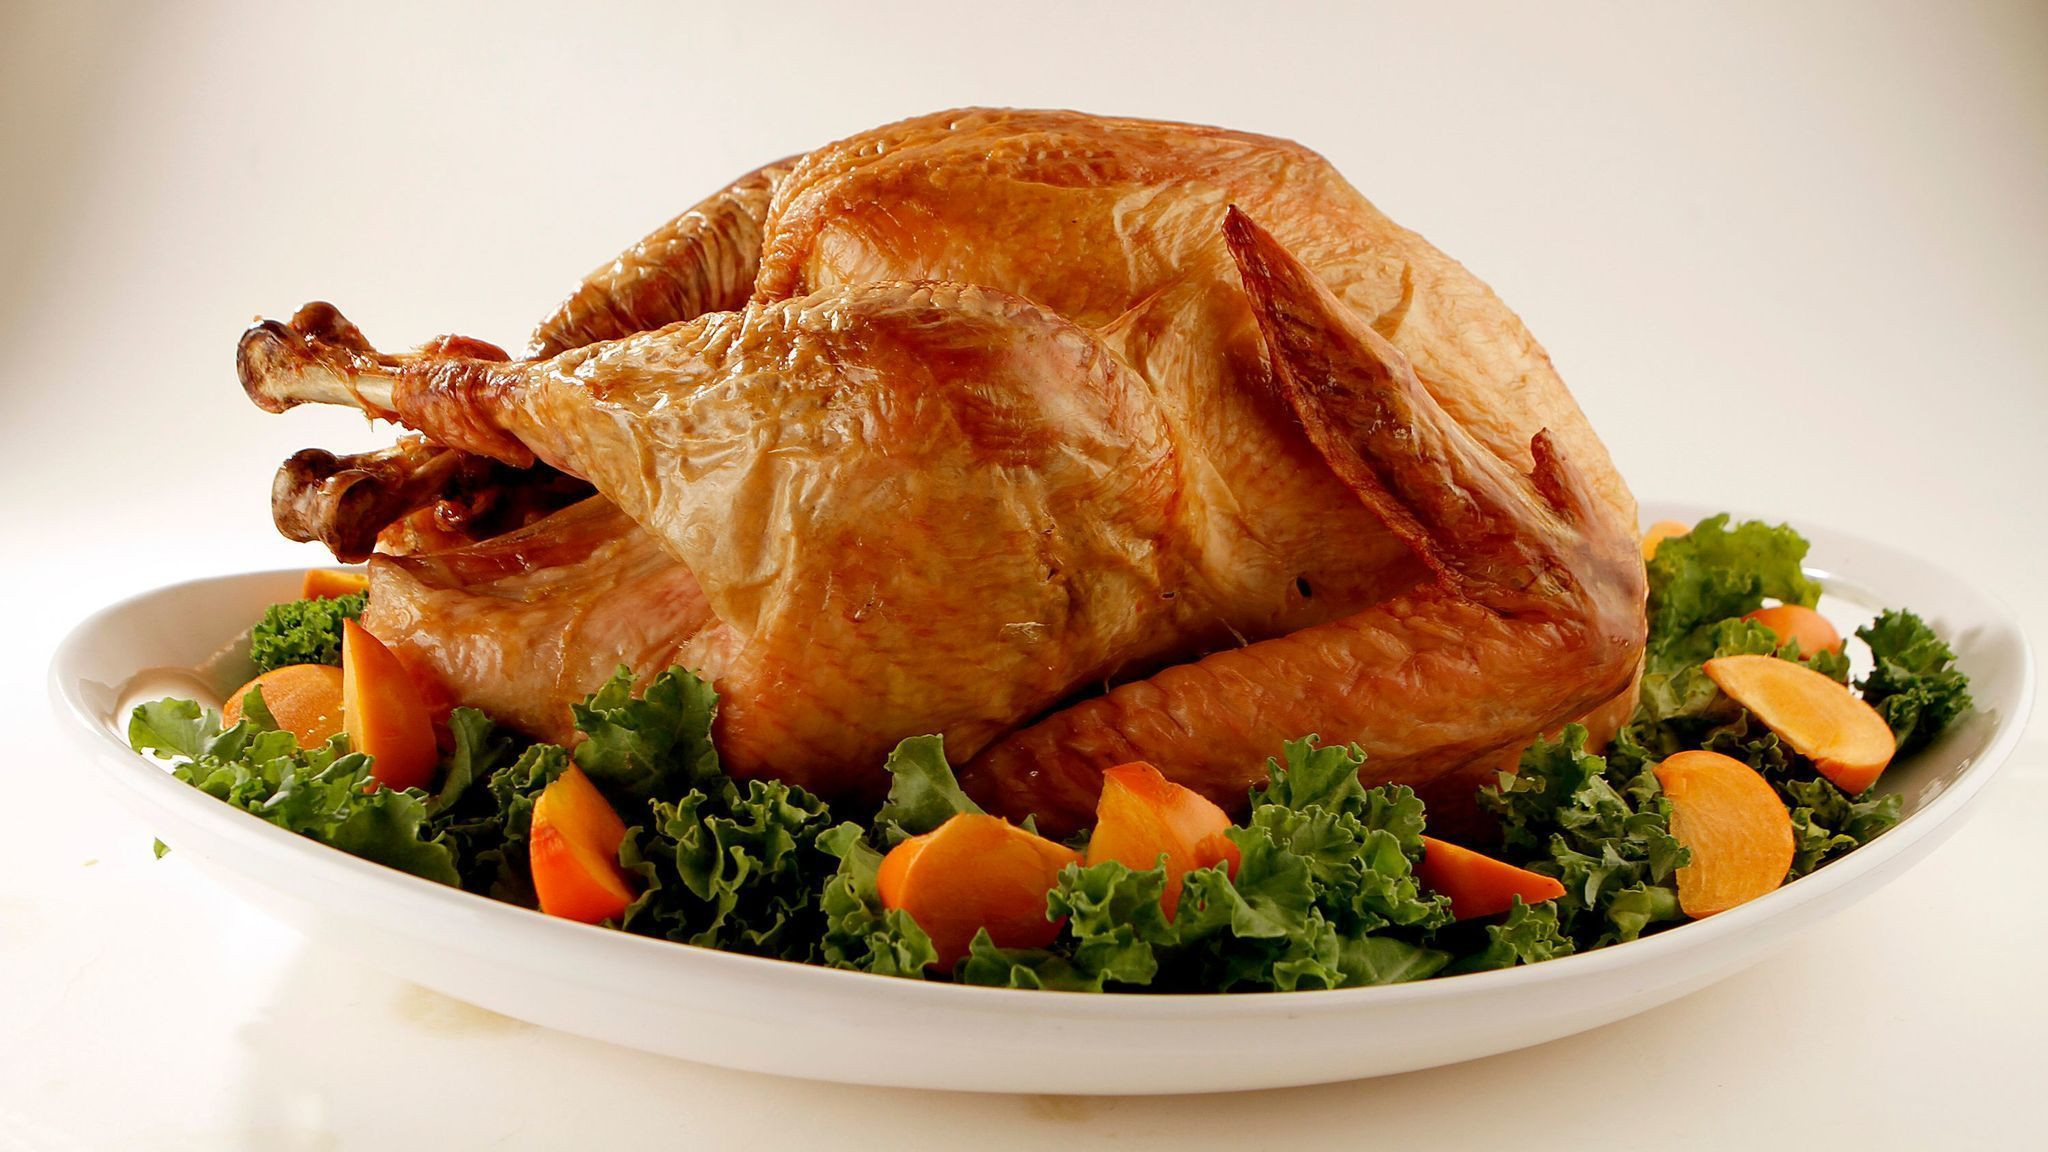 Cooked Thanksgiving Turkey  A beginner s guide to cooking a Thanksgiving turkey LA Times